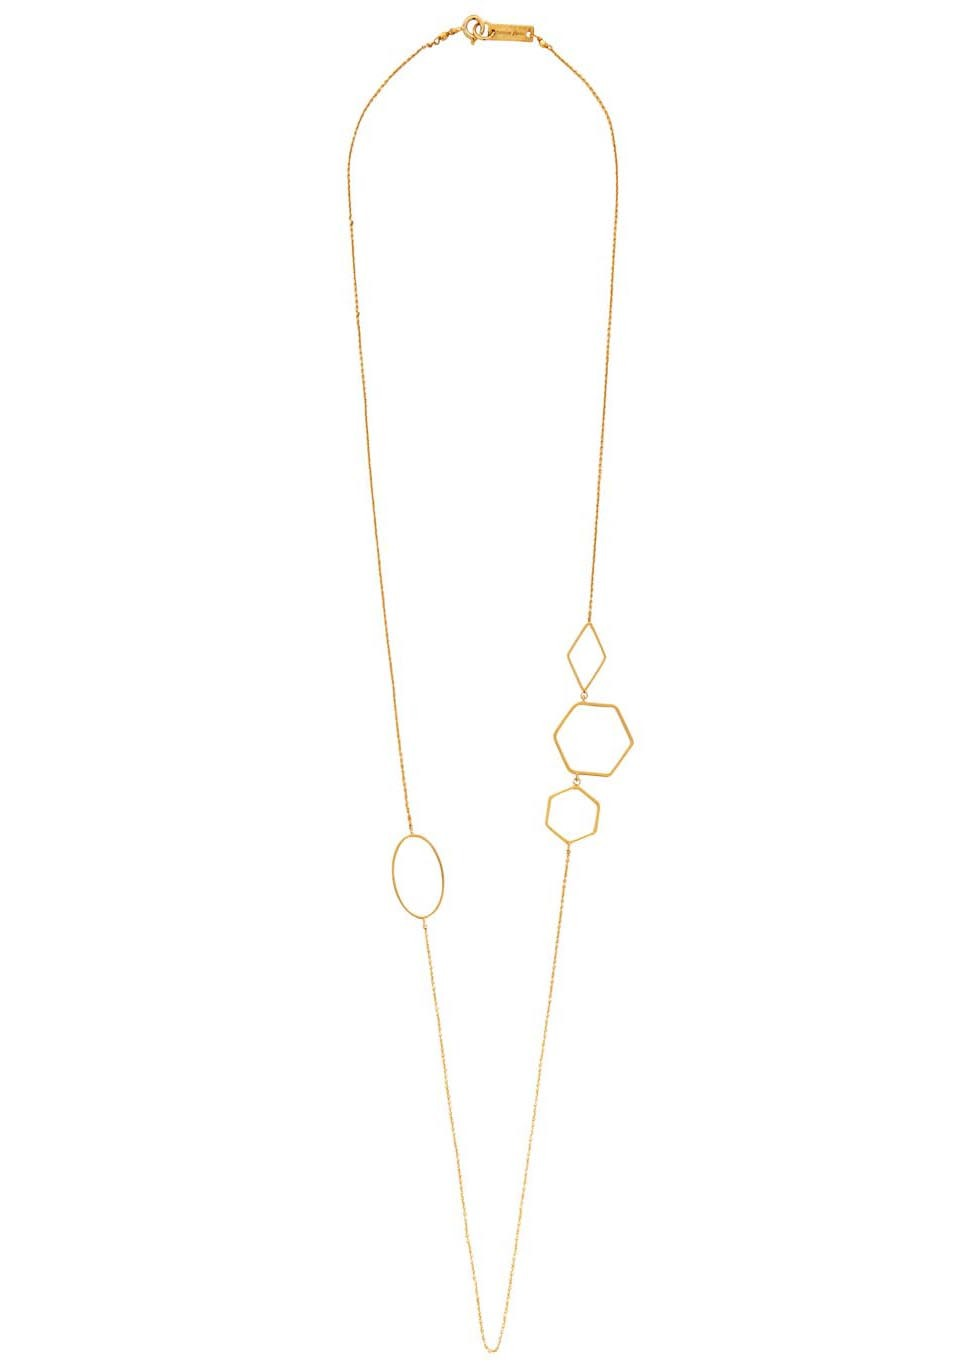 Sautoir Gold Tone Necklace - predominant colour: gold; occasions: casual, creative work; length: mid; size: small/fine; material: chain/metal; finish: plain; season: s/s 2016; style: chain (no pendant)